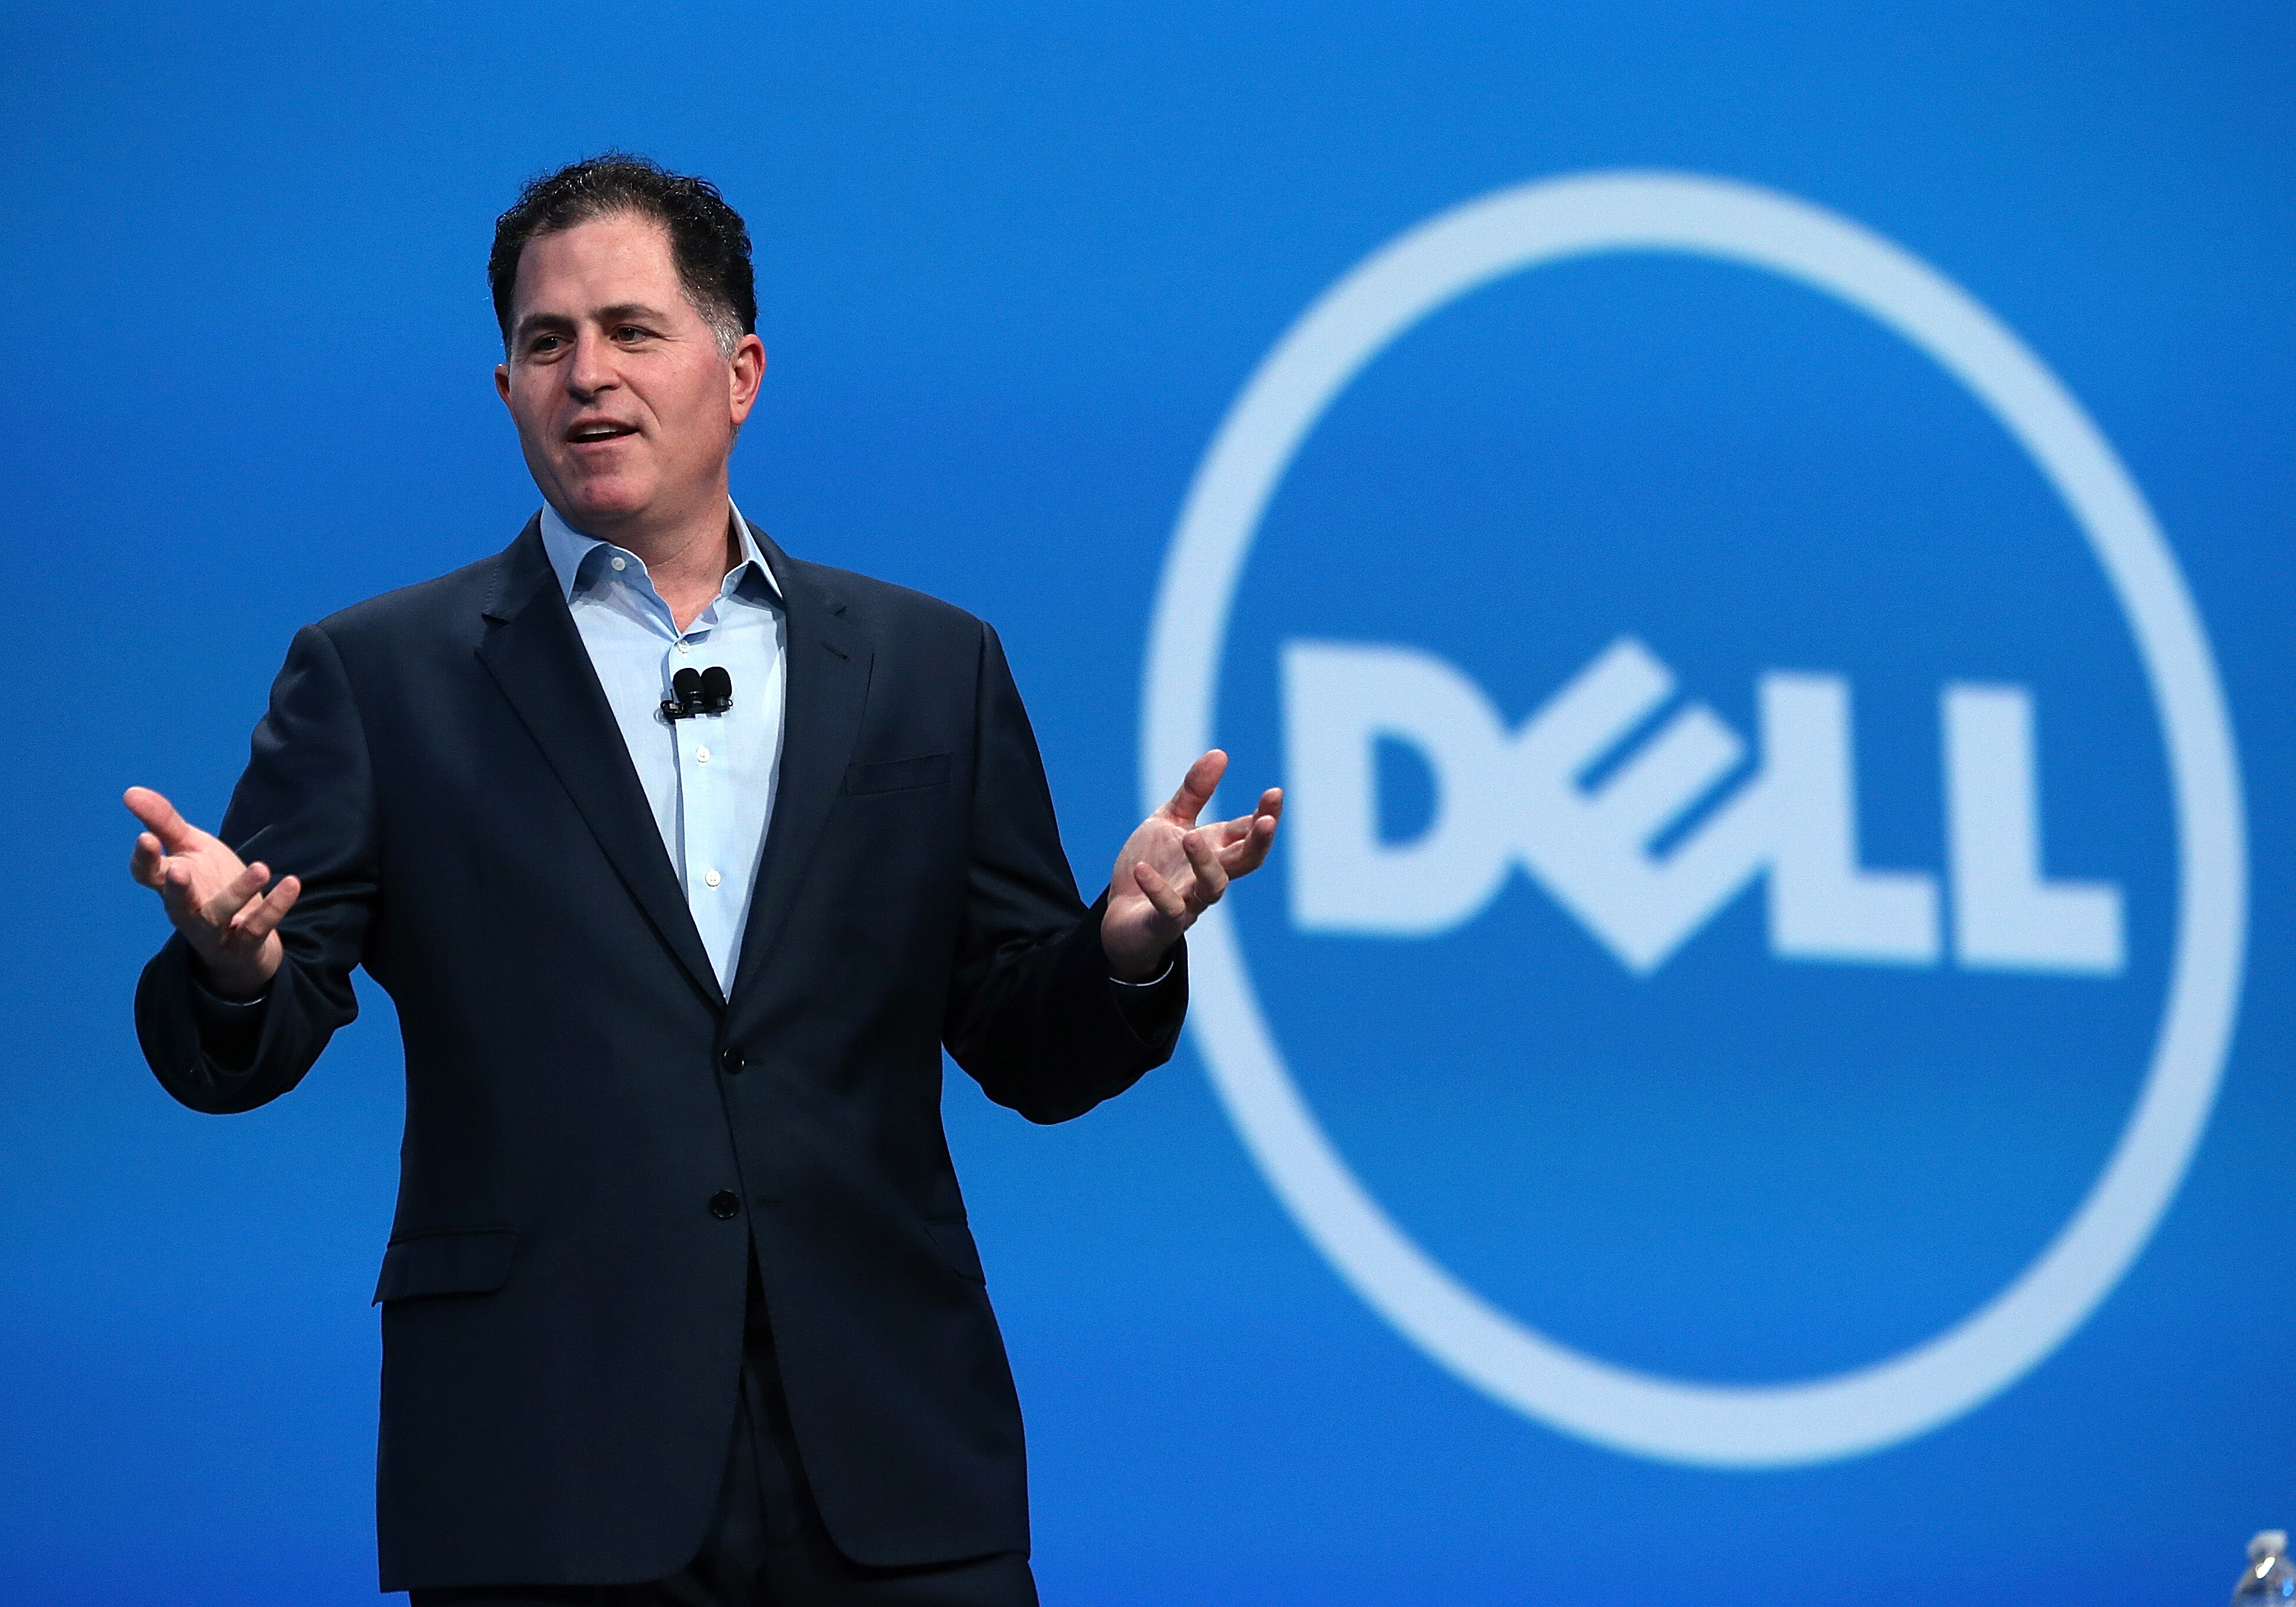 Dell CEO Michael Dell delivers a keynote address during the 2013 Oracle Open World conference in San Francisco, California, on Sept. 25, 2013.